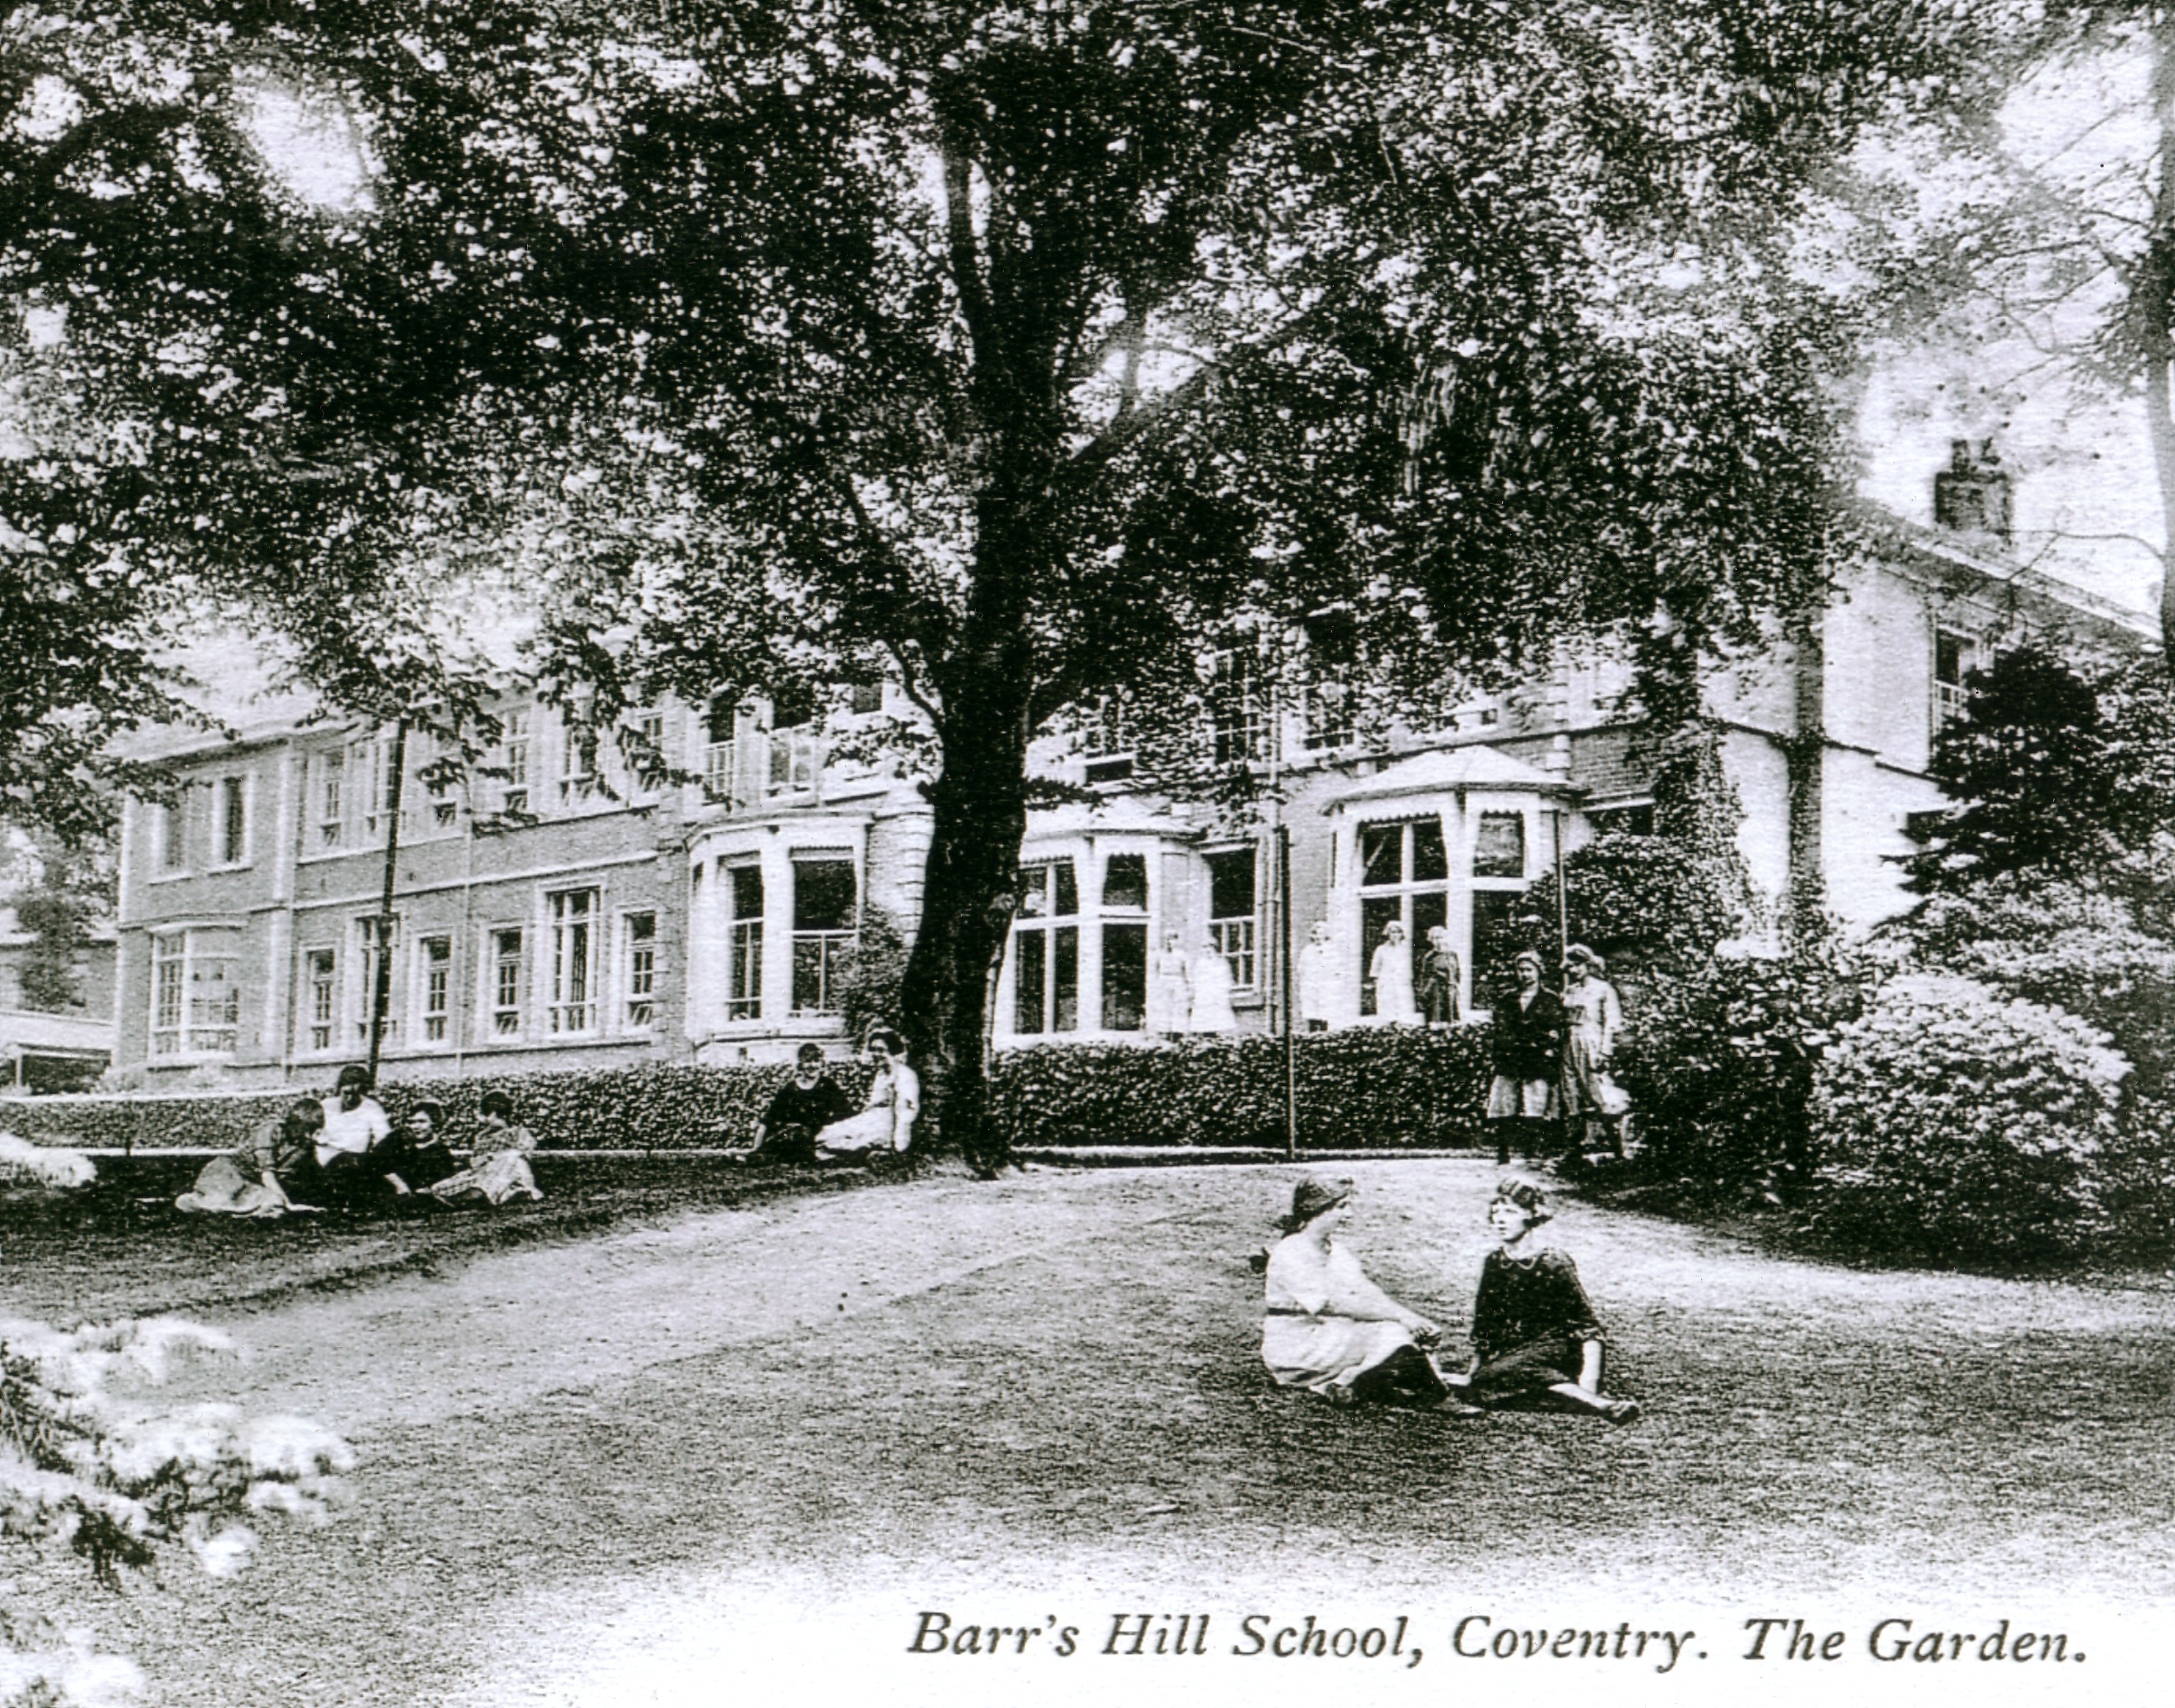 HAPPY 110TH BIRTHDAY BARR'S HILL SCHOOL